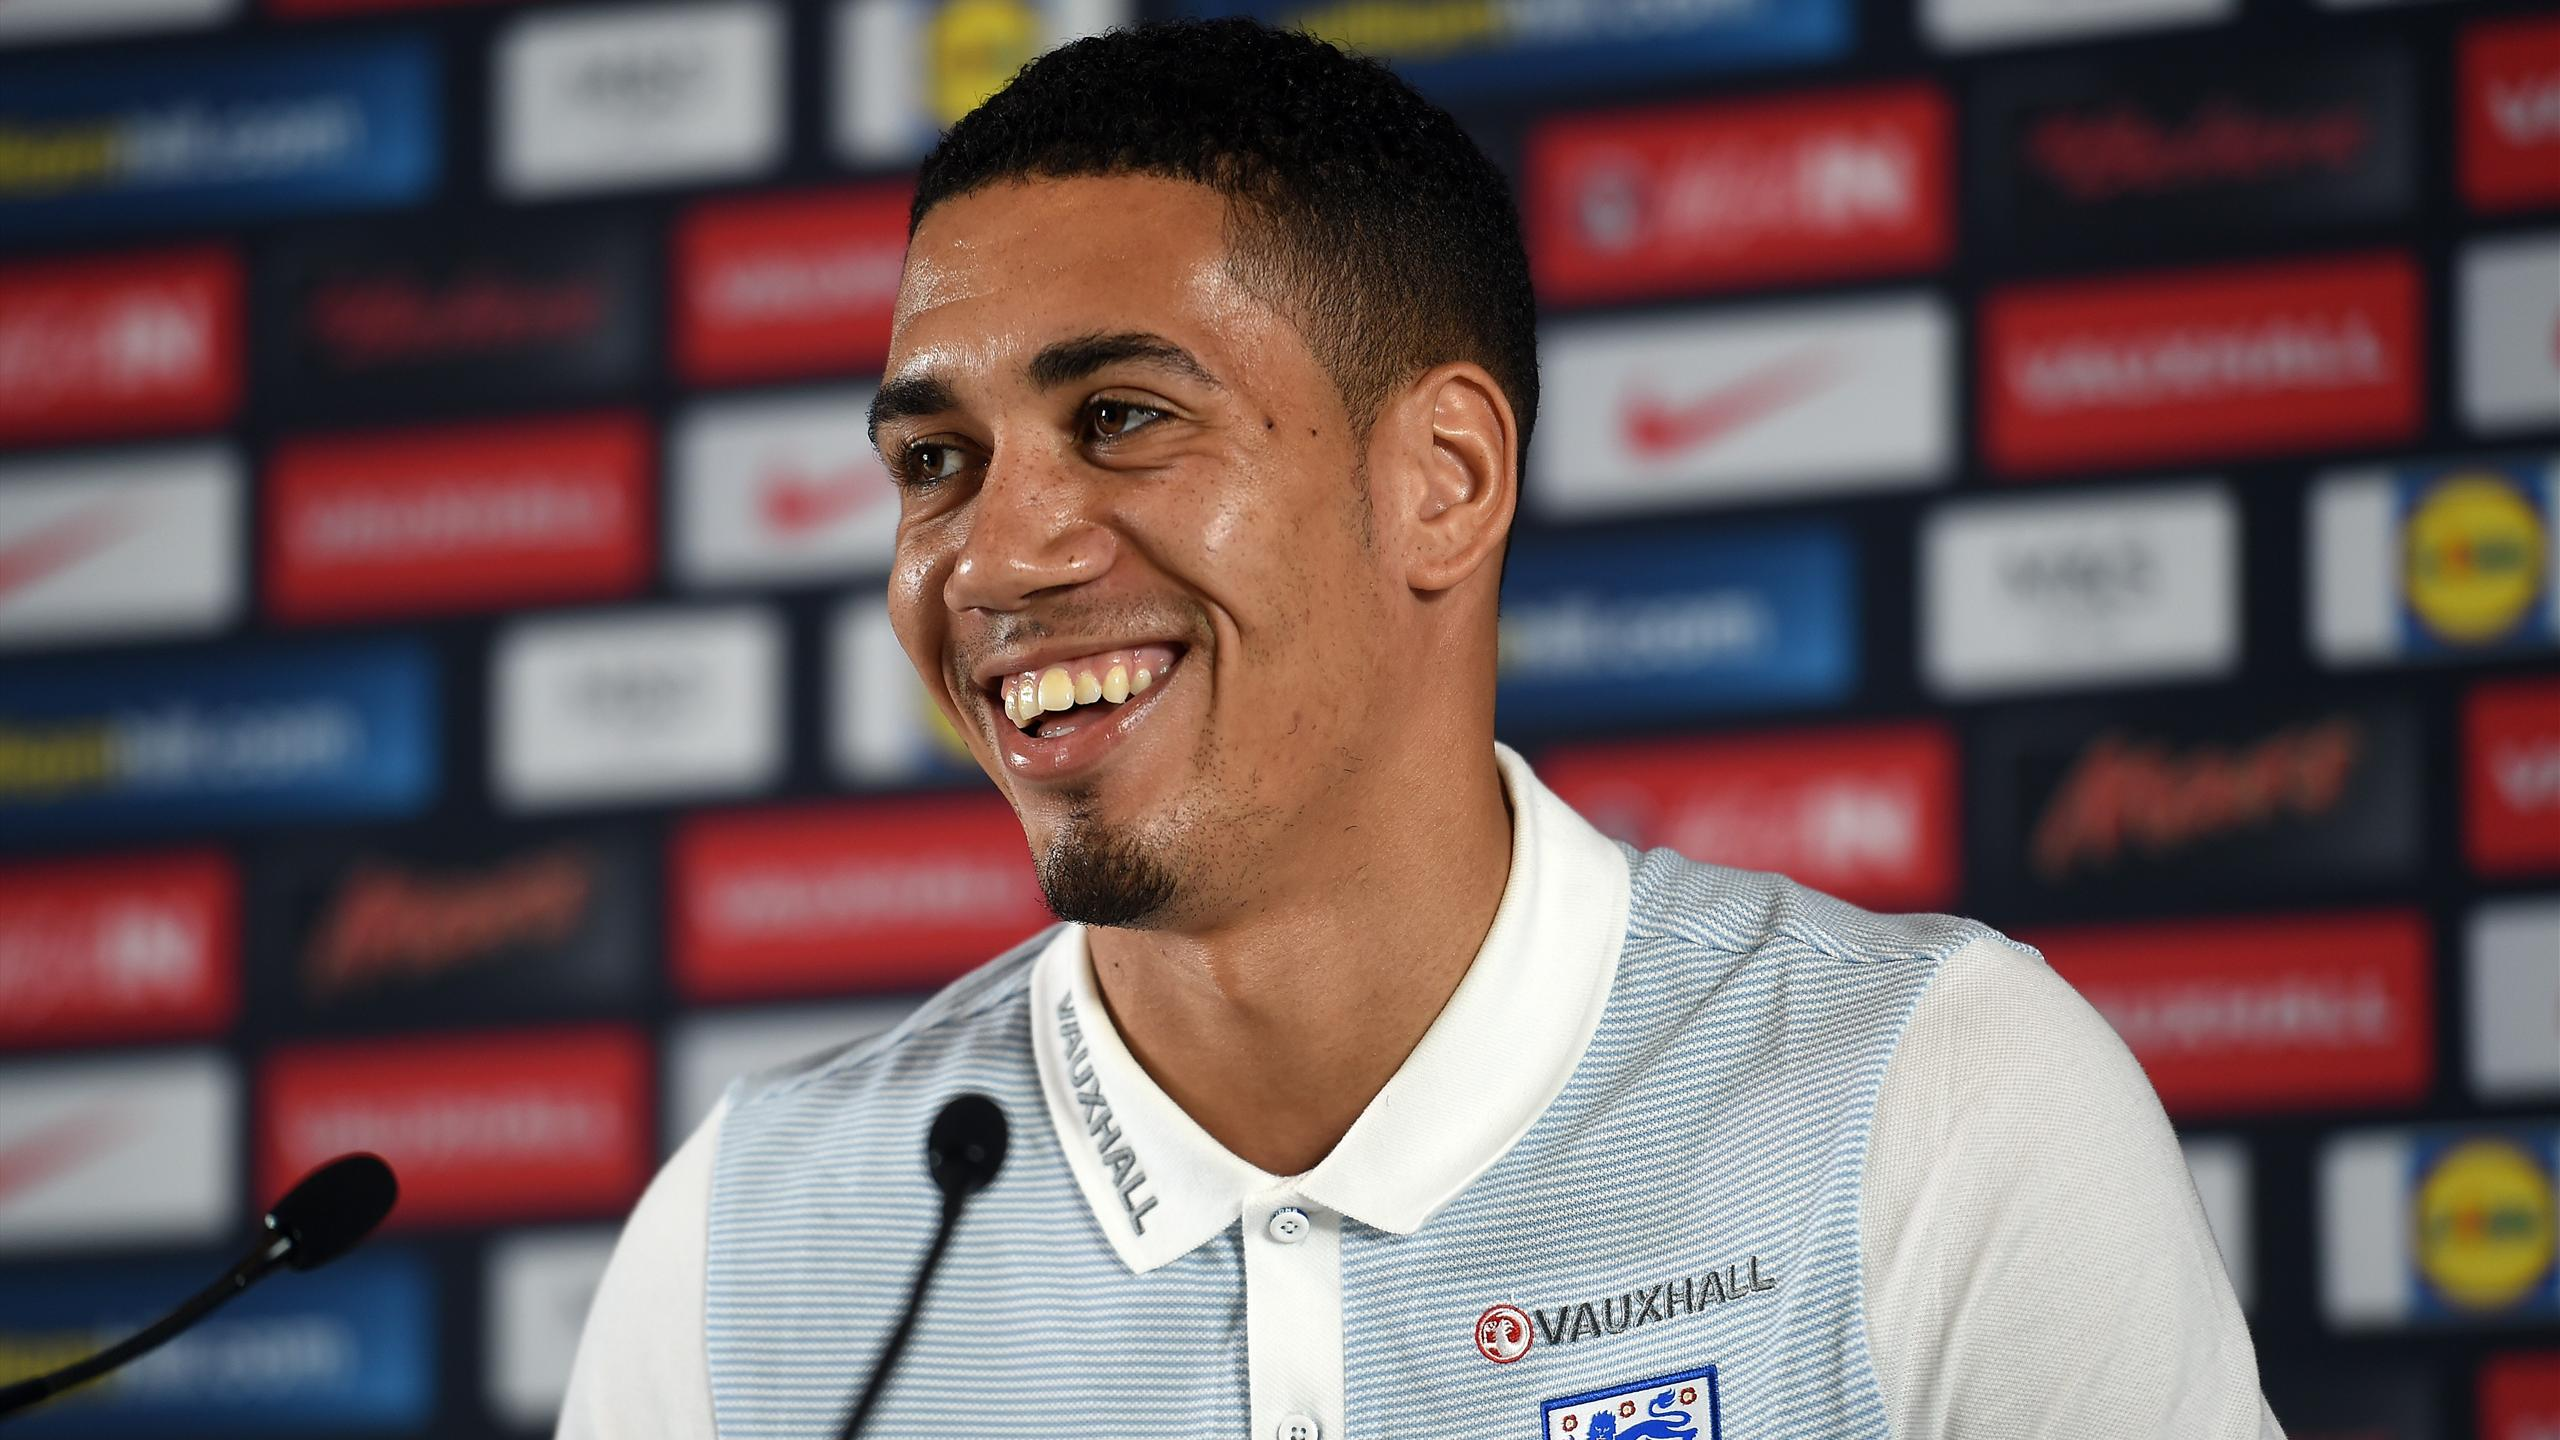 England's defender Chris Smalling attends a press conference in Chantilly, on June 8, 2016